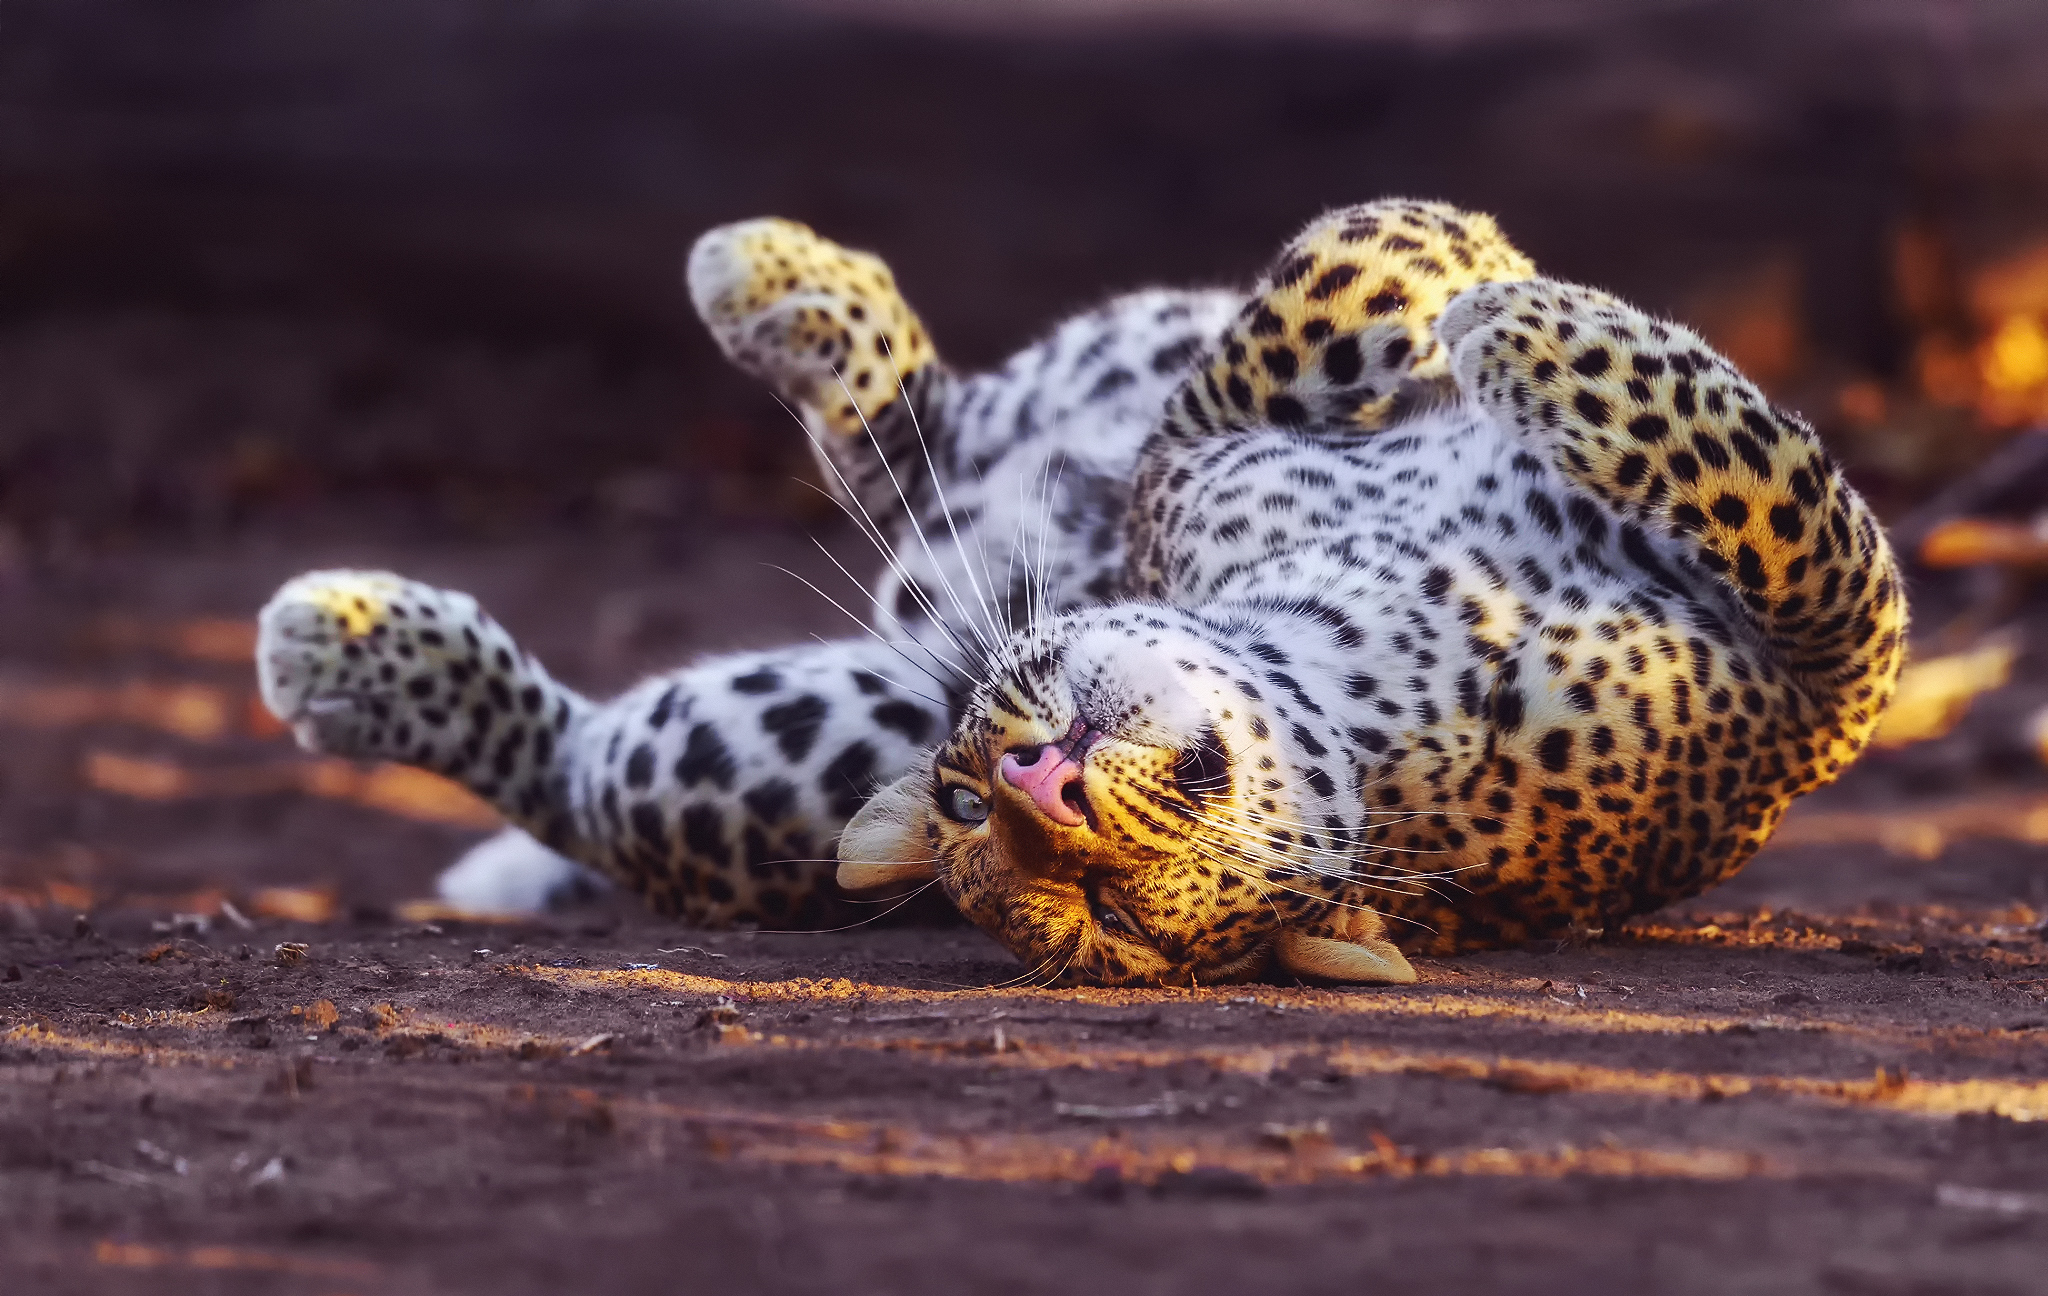 141849 download wallpaper Animals, Leopard, Predator, Big Cat, Playful screensavers and pictures for free